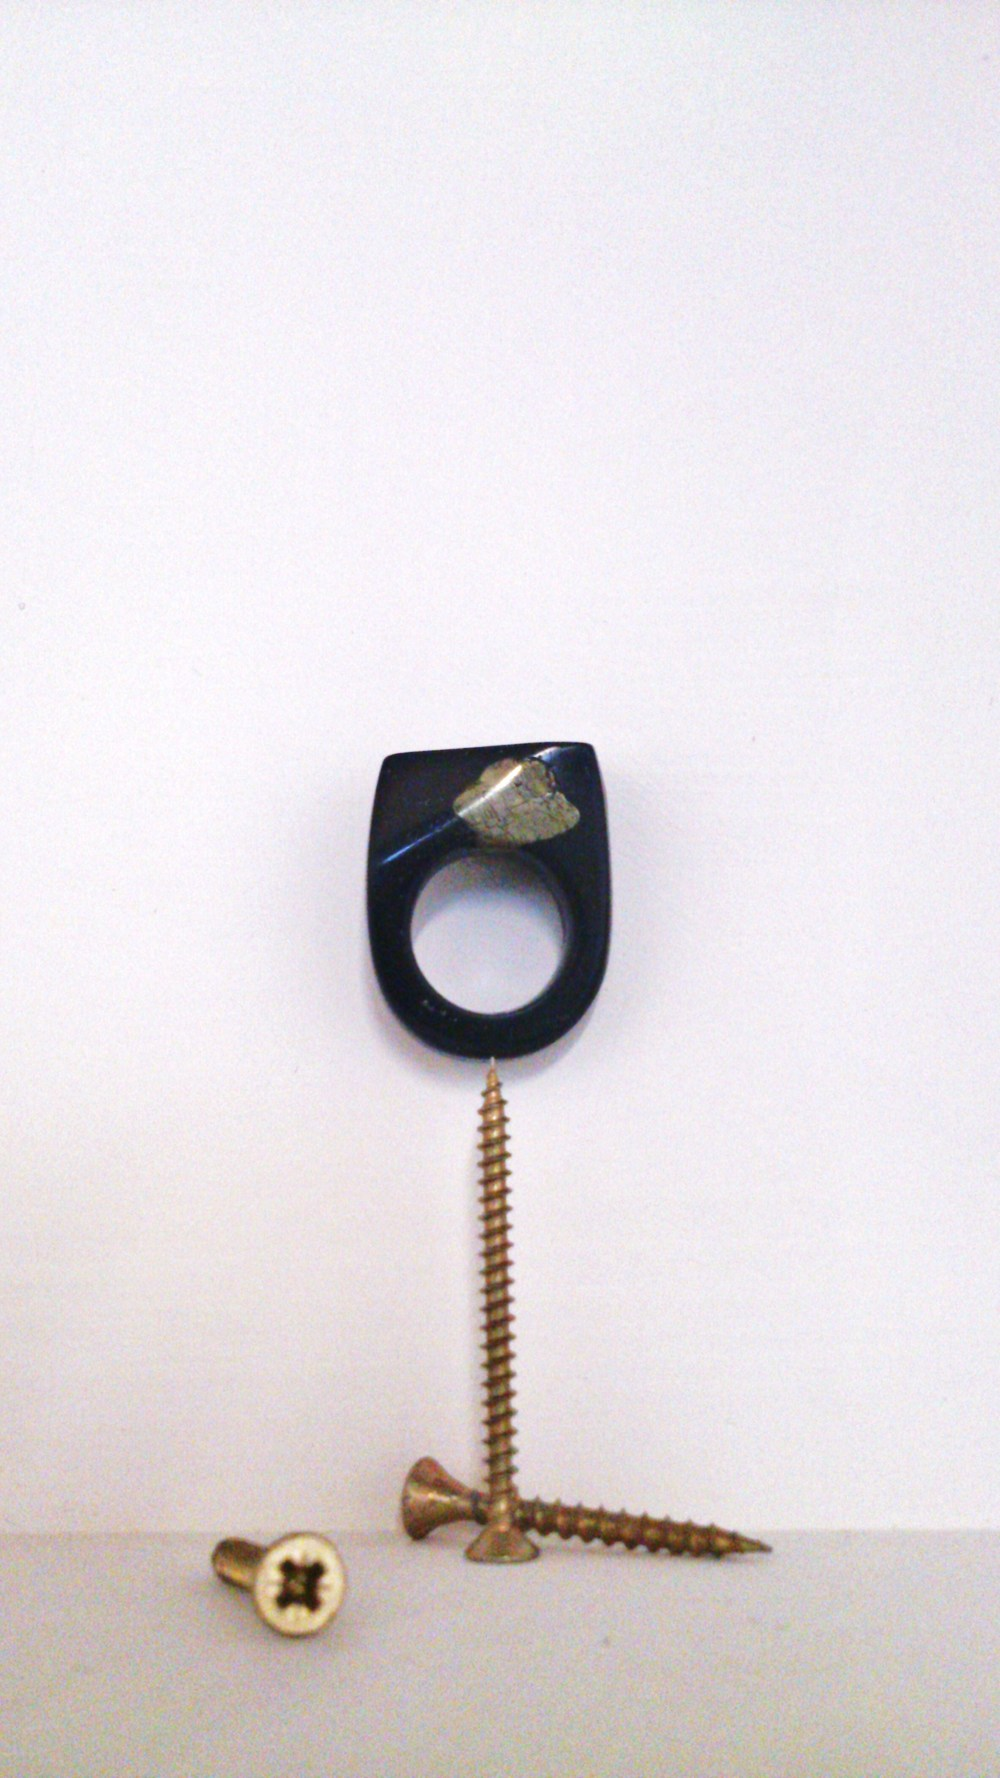 jade mellor hewn ring black pyrite screws.jpg